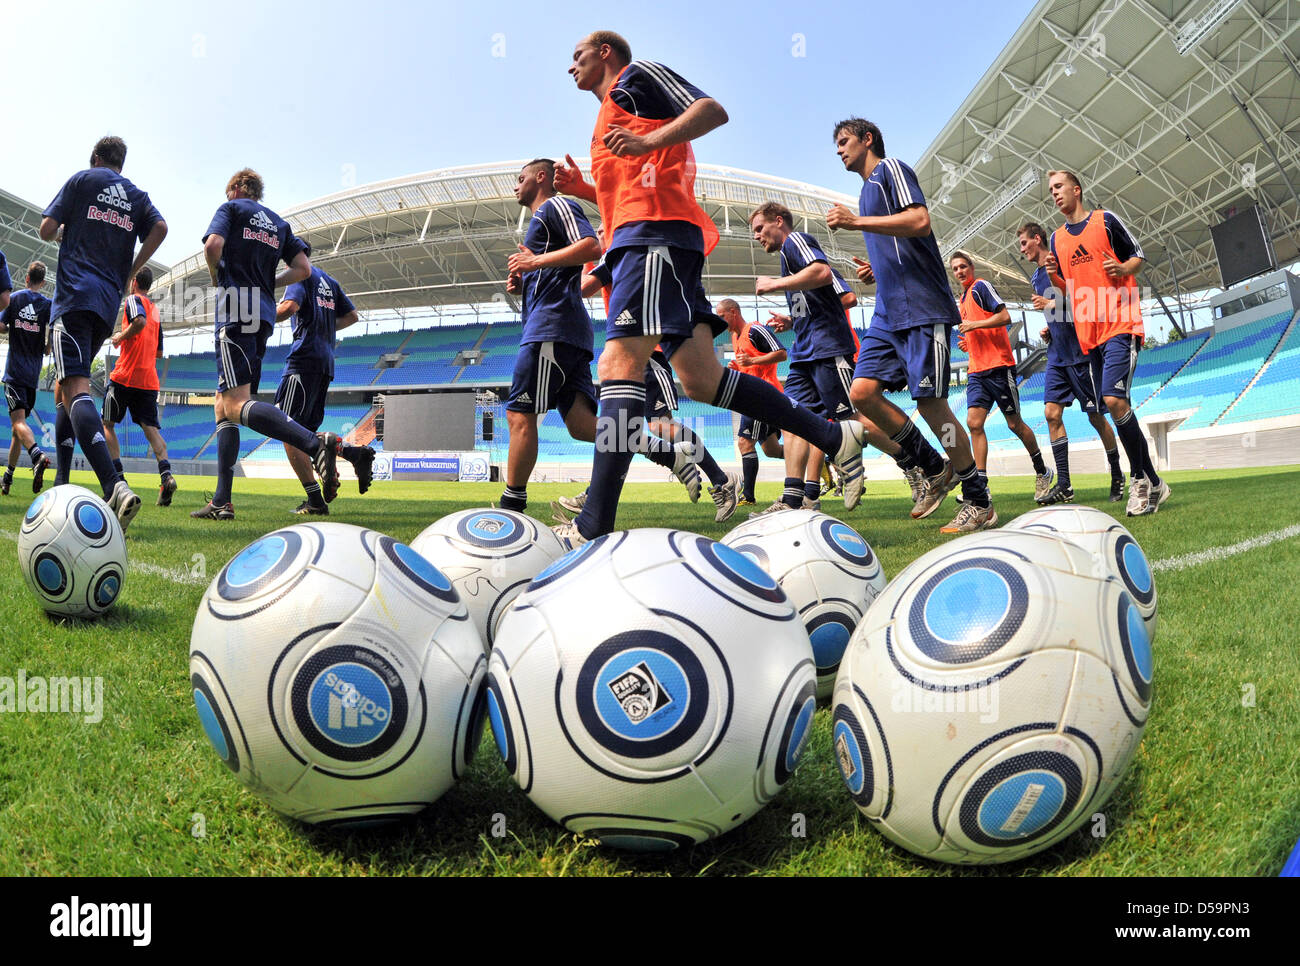 Players of the RB Leipzig, new to the regional league, kick off training at the Central Stadium in Leipzig, Germany, - Stock Image